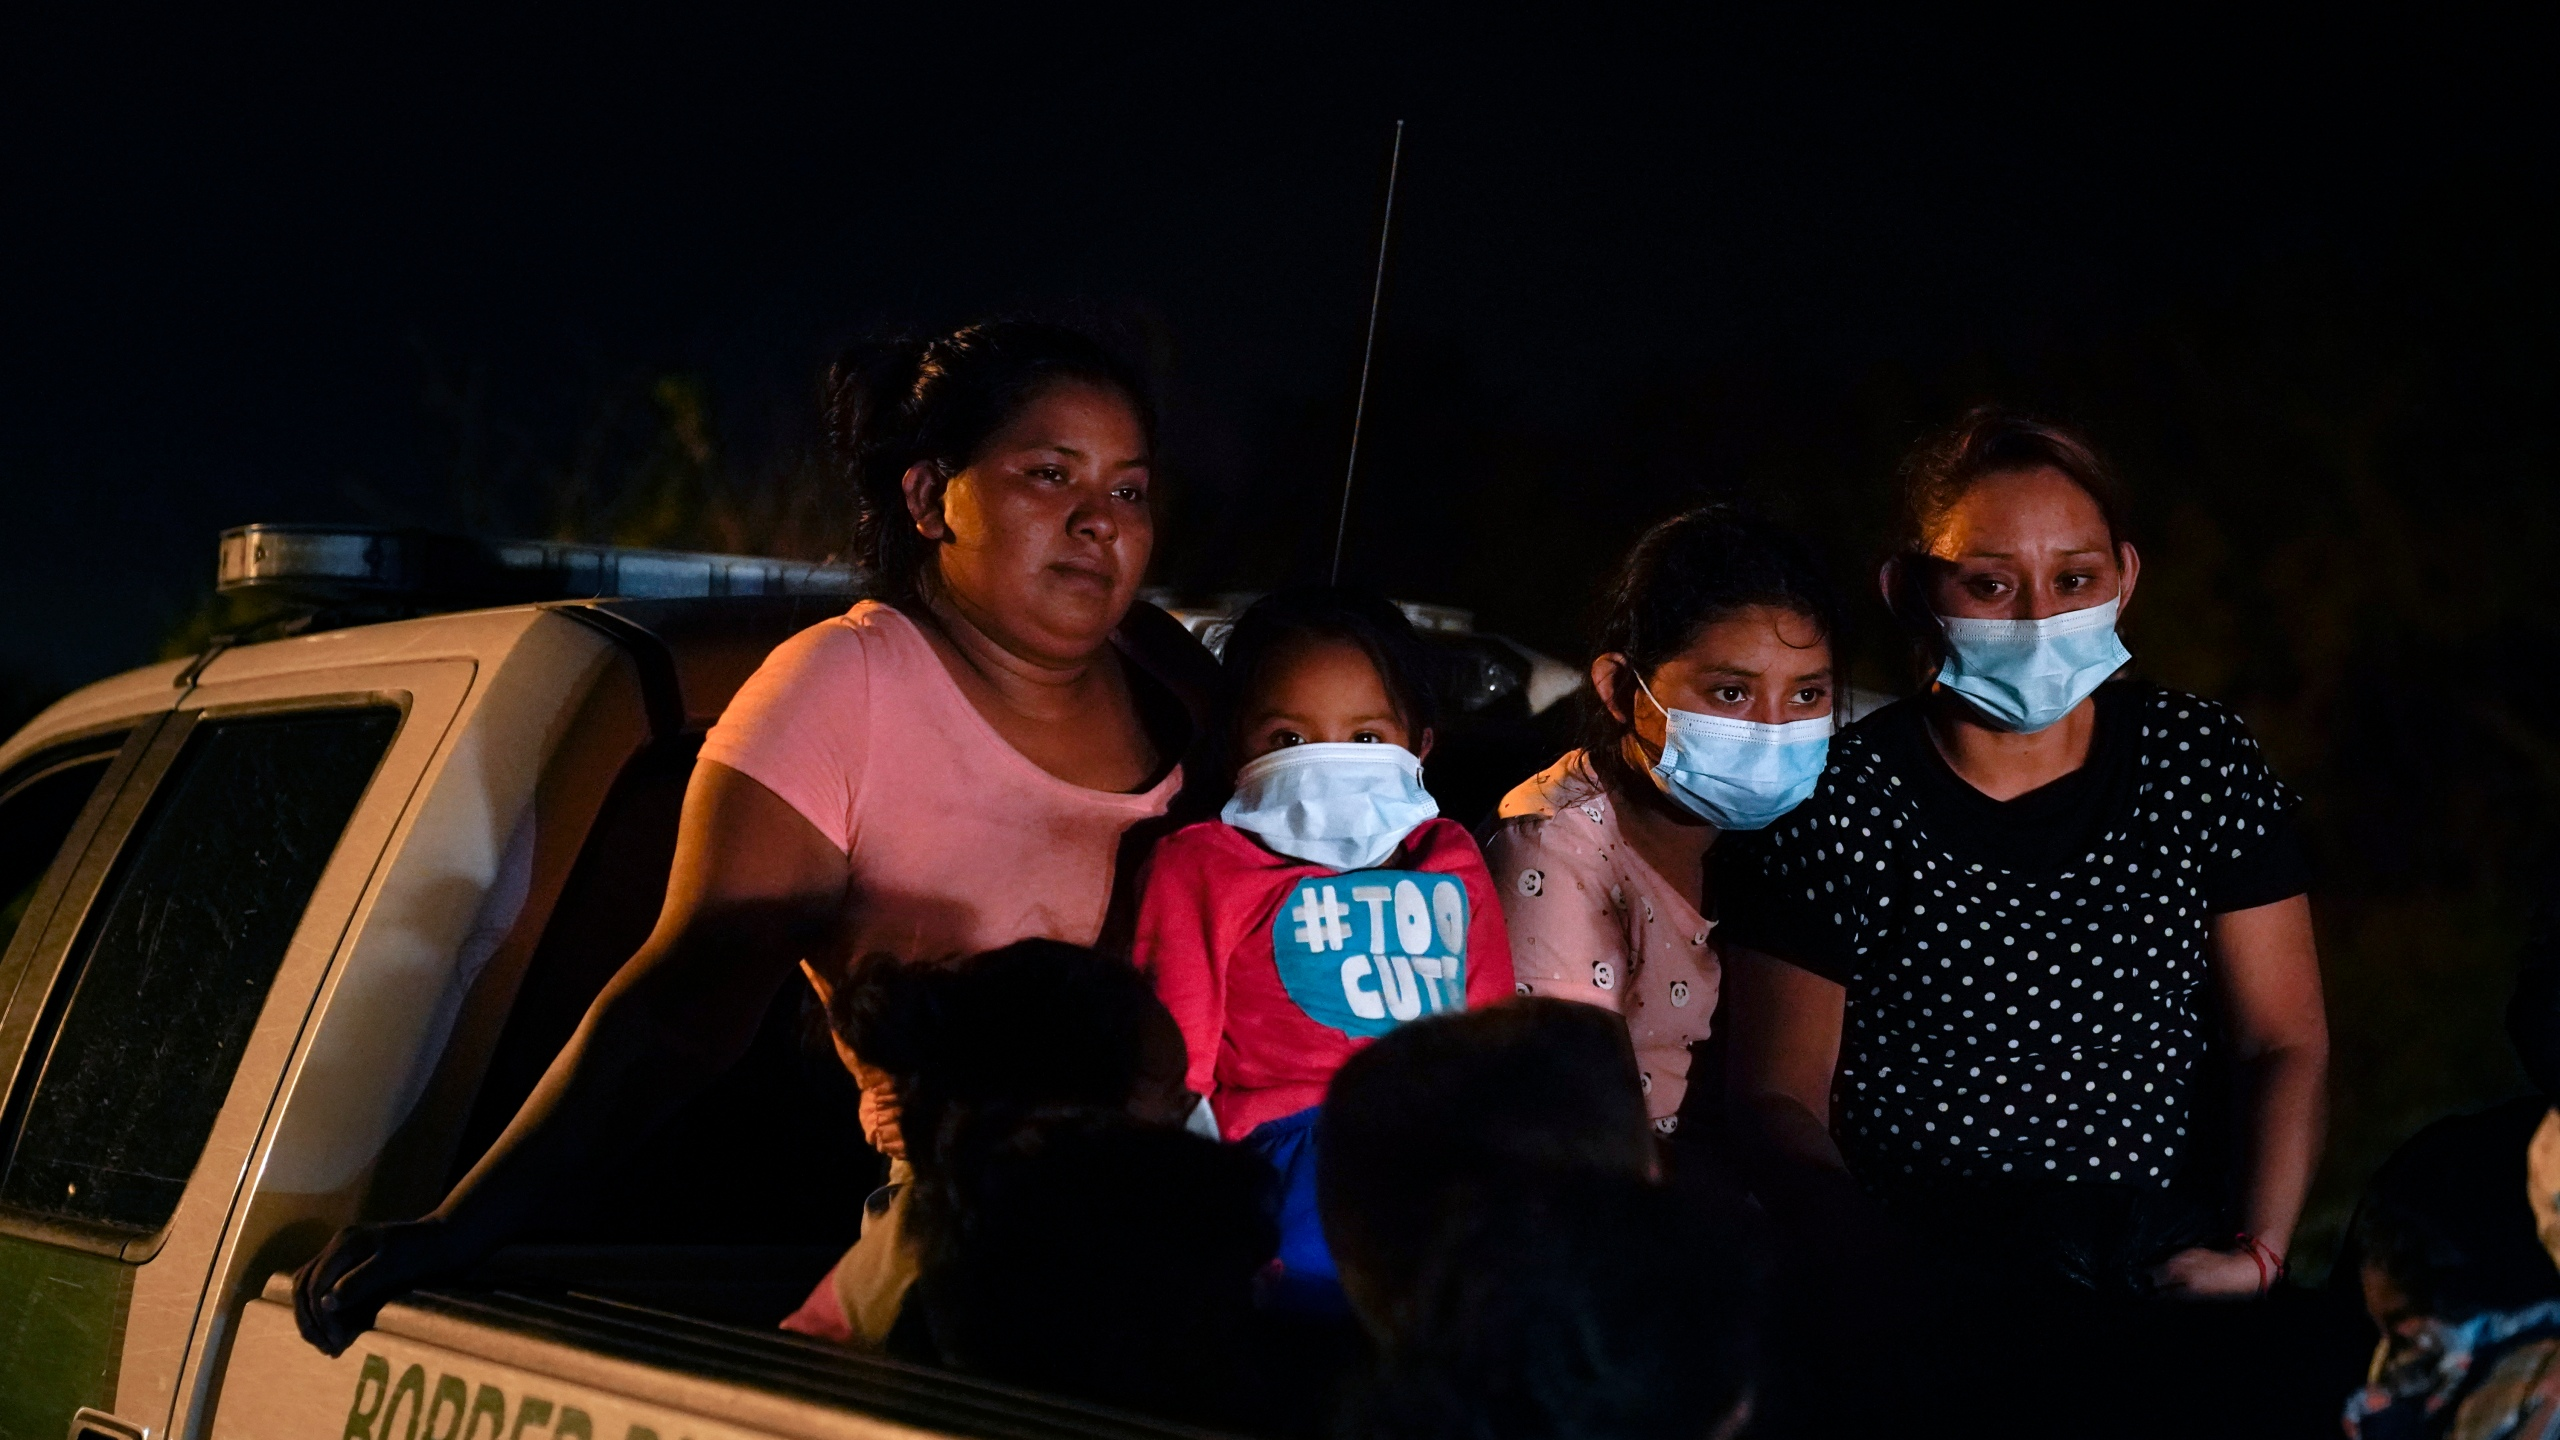 Migrants from Honduras wait in a Border Patrol truck after turning themselves in upon crossing the U.S.-Mexico border in La Joya, Texas, on May 17, 2021. (Gregory Bull / Associated Press)